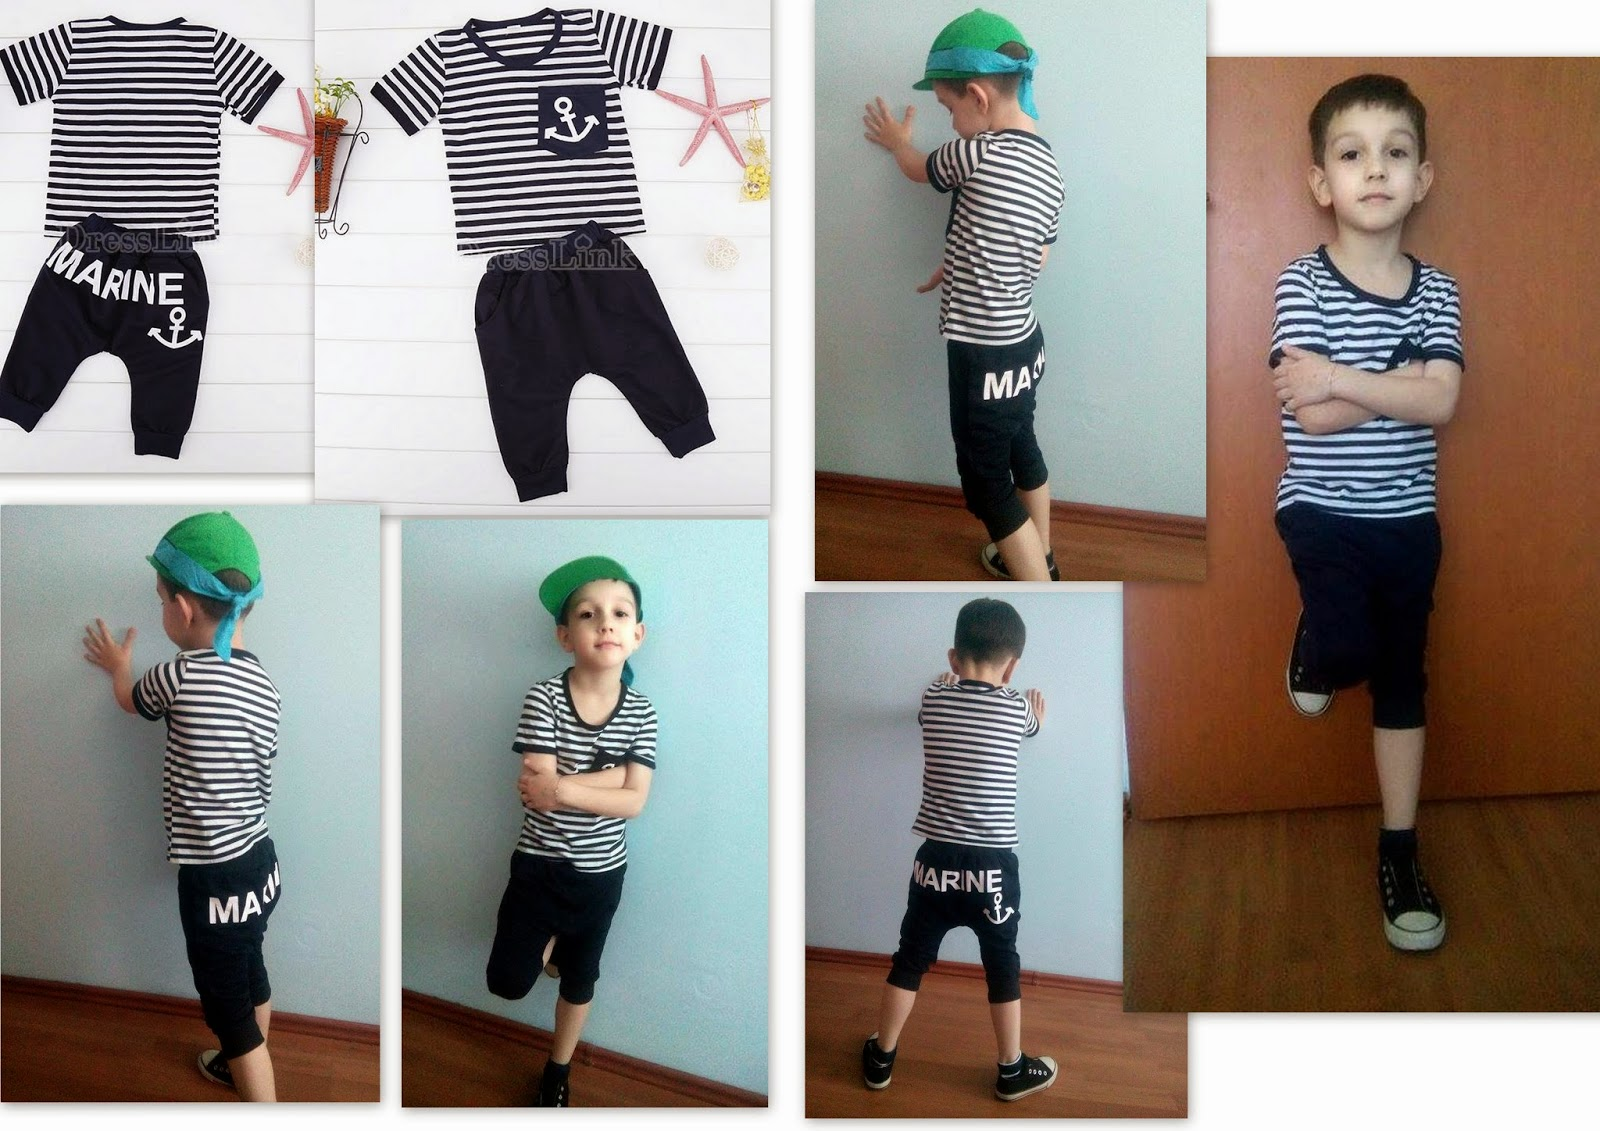 http://www.dresslink.com/boy-kids-children-new-fashion-two-pieces-summer-suit-striped-short-sleeve-tshirt-and-half-pants-p-18882.html?utm_source=blog&utm_medium=banner&utm_campaign=lendy163